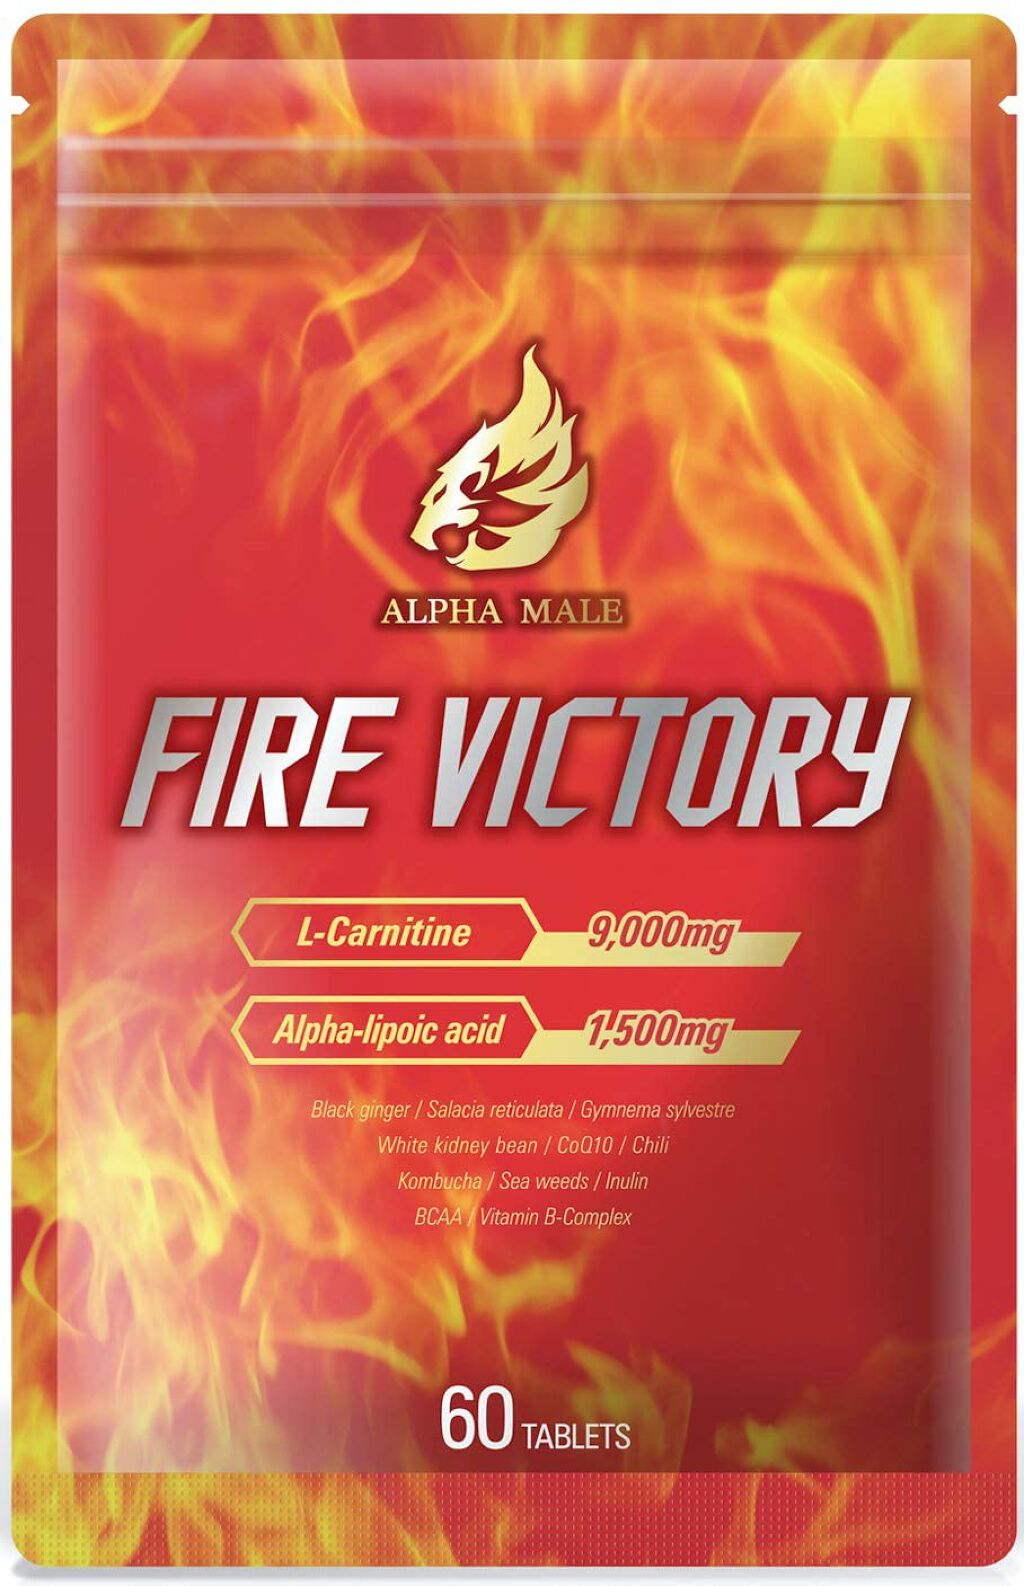 FIRE VICTORY ALPHA MALE